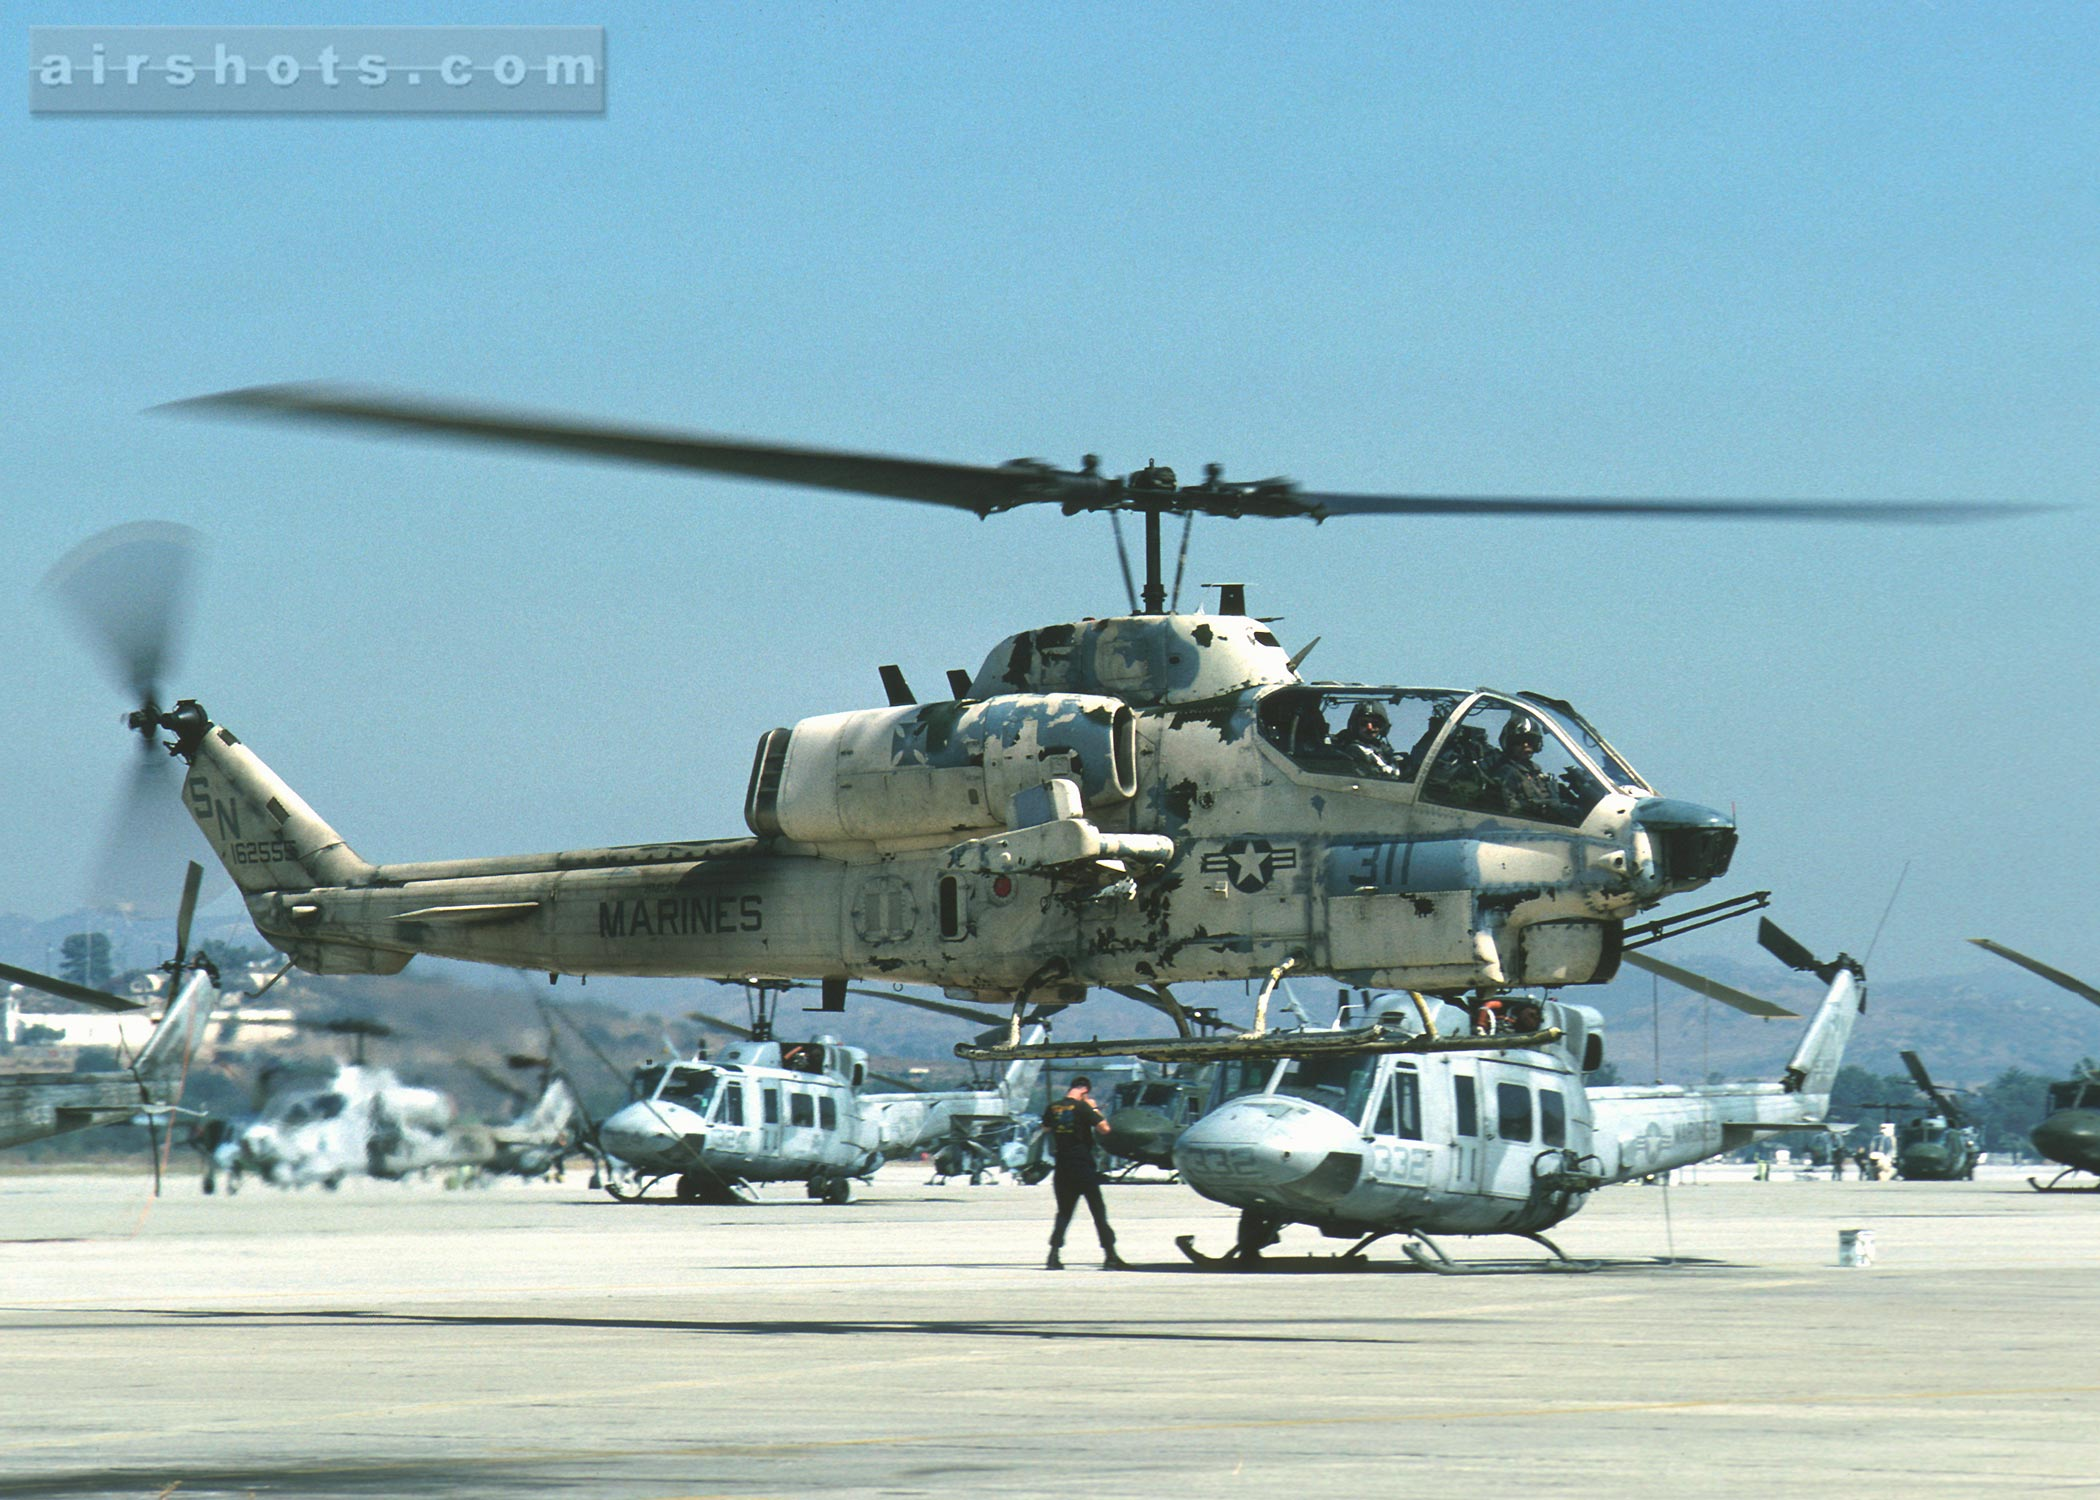 AH-1W - Helicopter Modeling - ARC Discussion Forums on uh-1n helicopter, uh-1h helicopter, agusta a129 mangusta, uh-1y venom, mh-60r helicopter, ch-53e super stallion, ah-1z helicopter, vh-3 helicopter, mh-60 helicopter, h-46 helicopter, hal light combat helicopter, uh-1b helicopter, ah-64 helicopter, ch-47 helicopter, ch-46 sea knight, ah-1 helicopter, uh-1y helicopter, f-14 tomcat, ah-1z viper, f/a-18 hornet, v-22 osprey, uh-1 iroquois, ah-1 cobra, ch-47 chinook, ah-64 apache, ch-53 sea stallion, attack helicopter, uh-1 helicopter, sh-60f helicopter, f-15 eagle, mh-53 helicopter, oh-58 kiowa, ch-46 helicopter, c-130 helicopter, f-16 fighting falcon, mh-60s helicopter, md helicopters mh-6 little bird, uav helicopter, mh-53e helicopter,